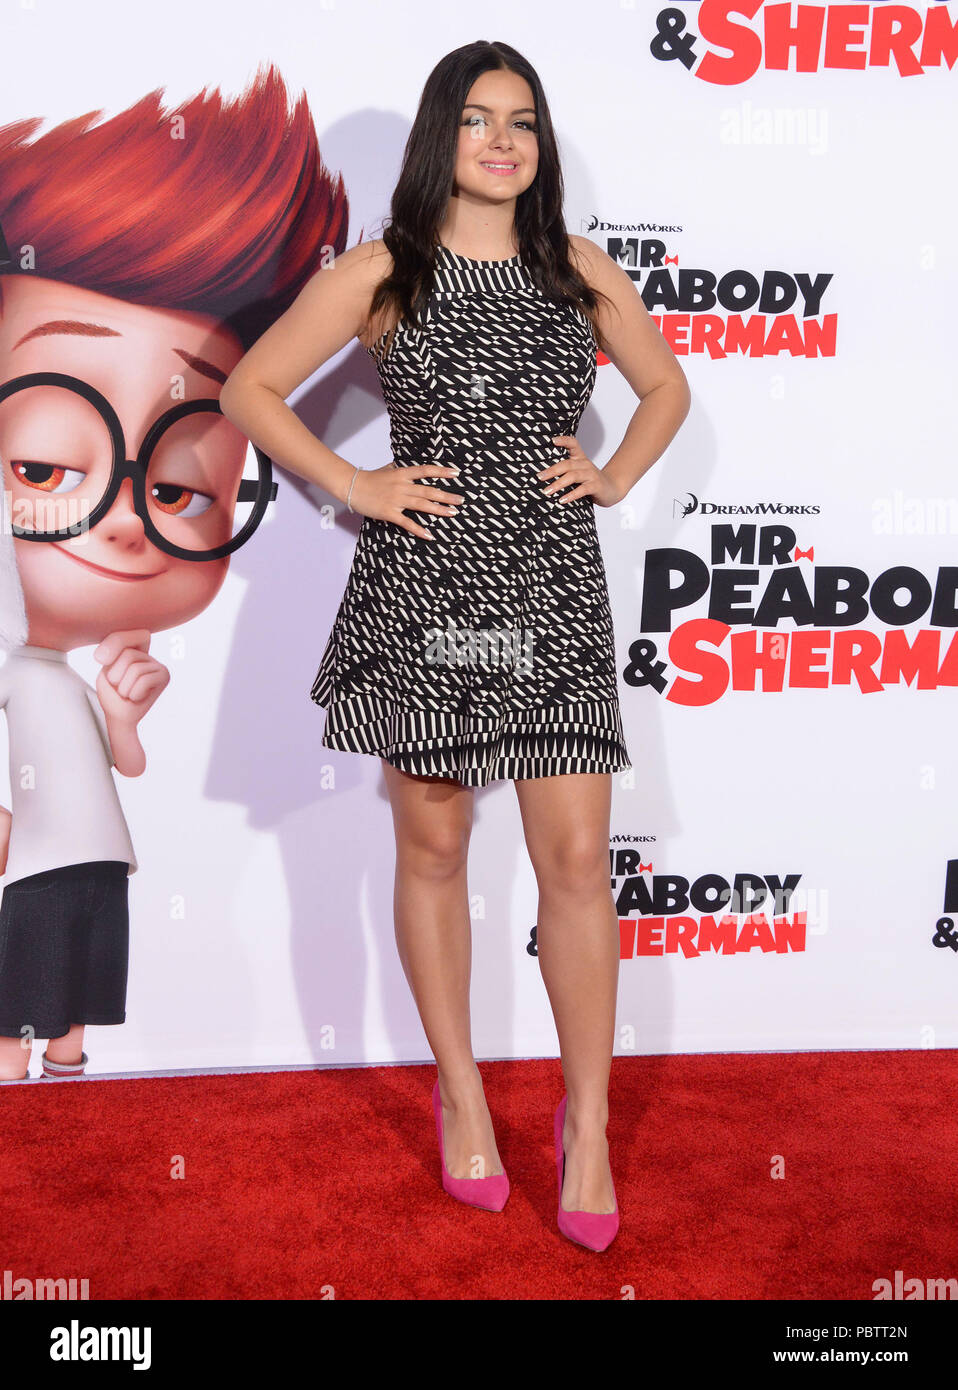 dr peabody and sherman full movie